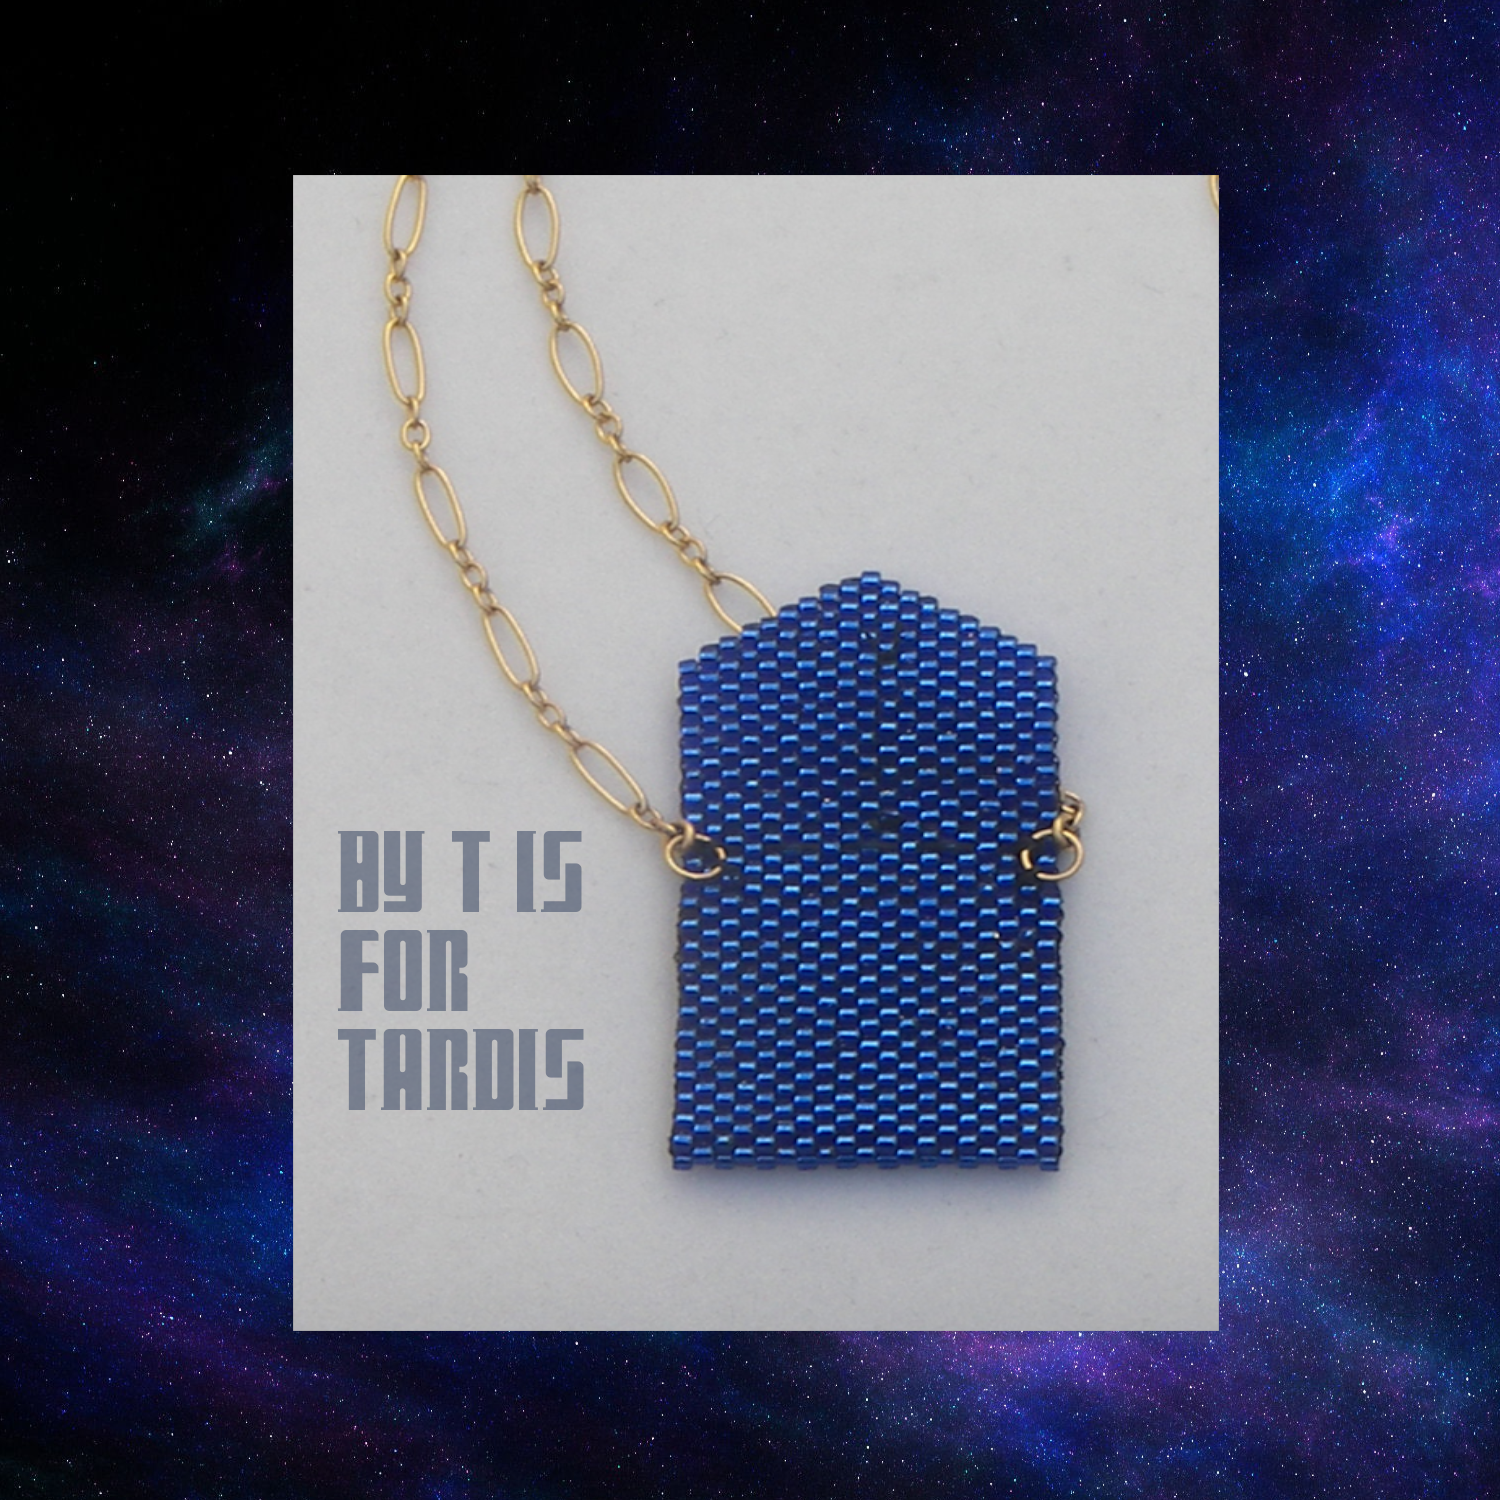 tardis envelope open on chain inside closeup by KC Dragonfly